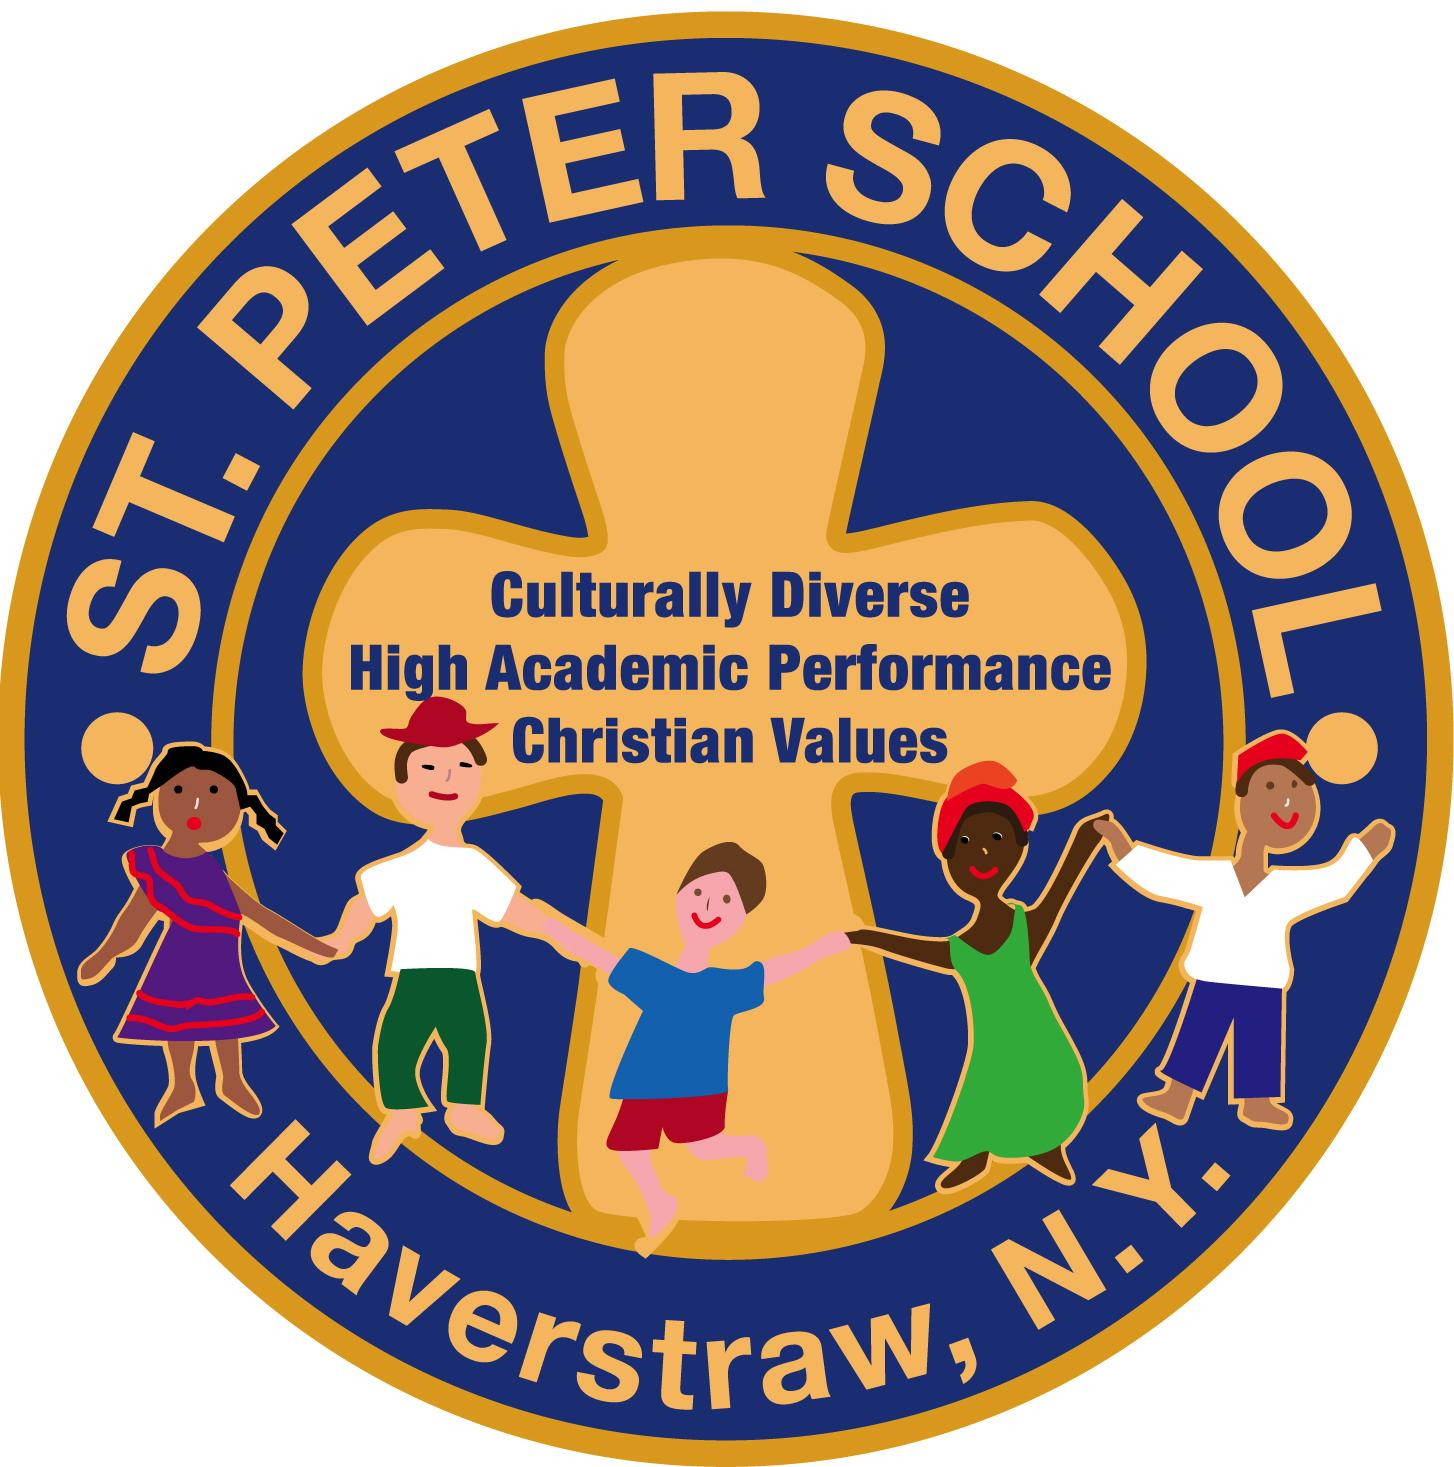 St. Peters School